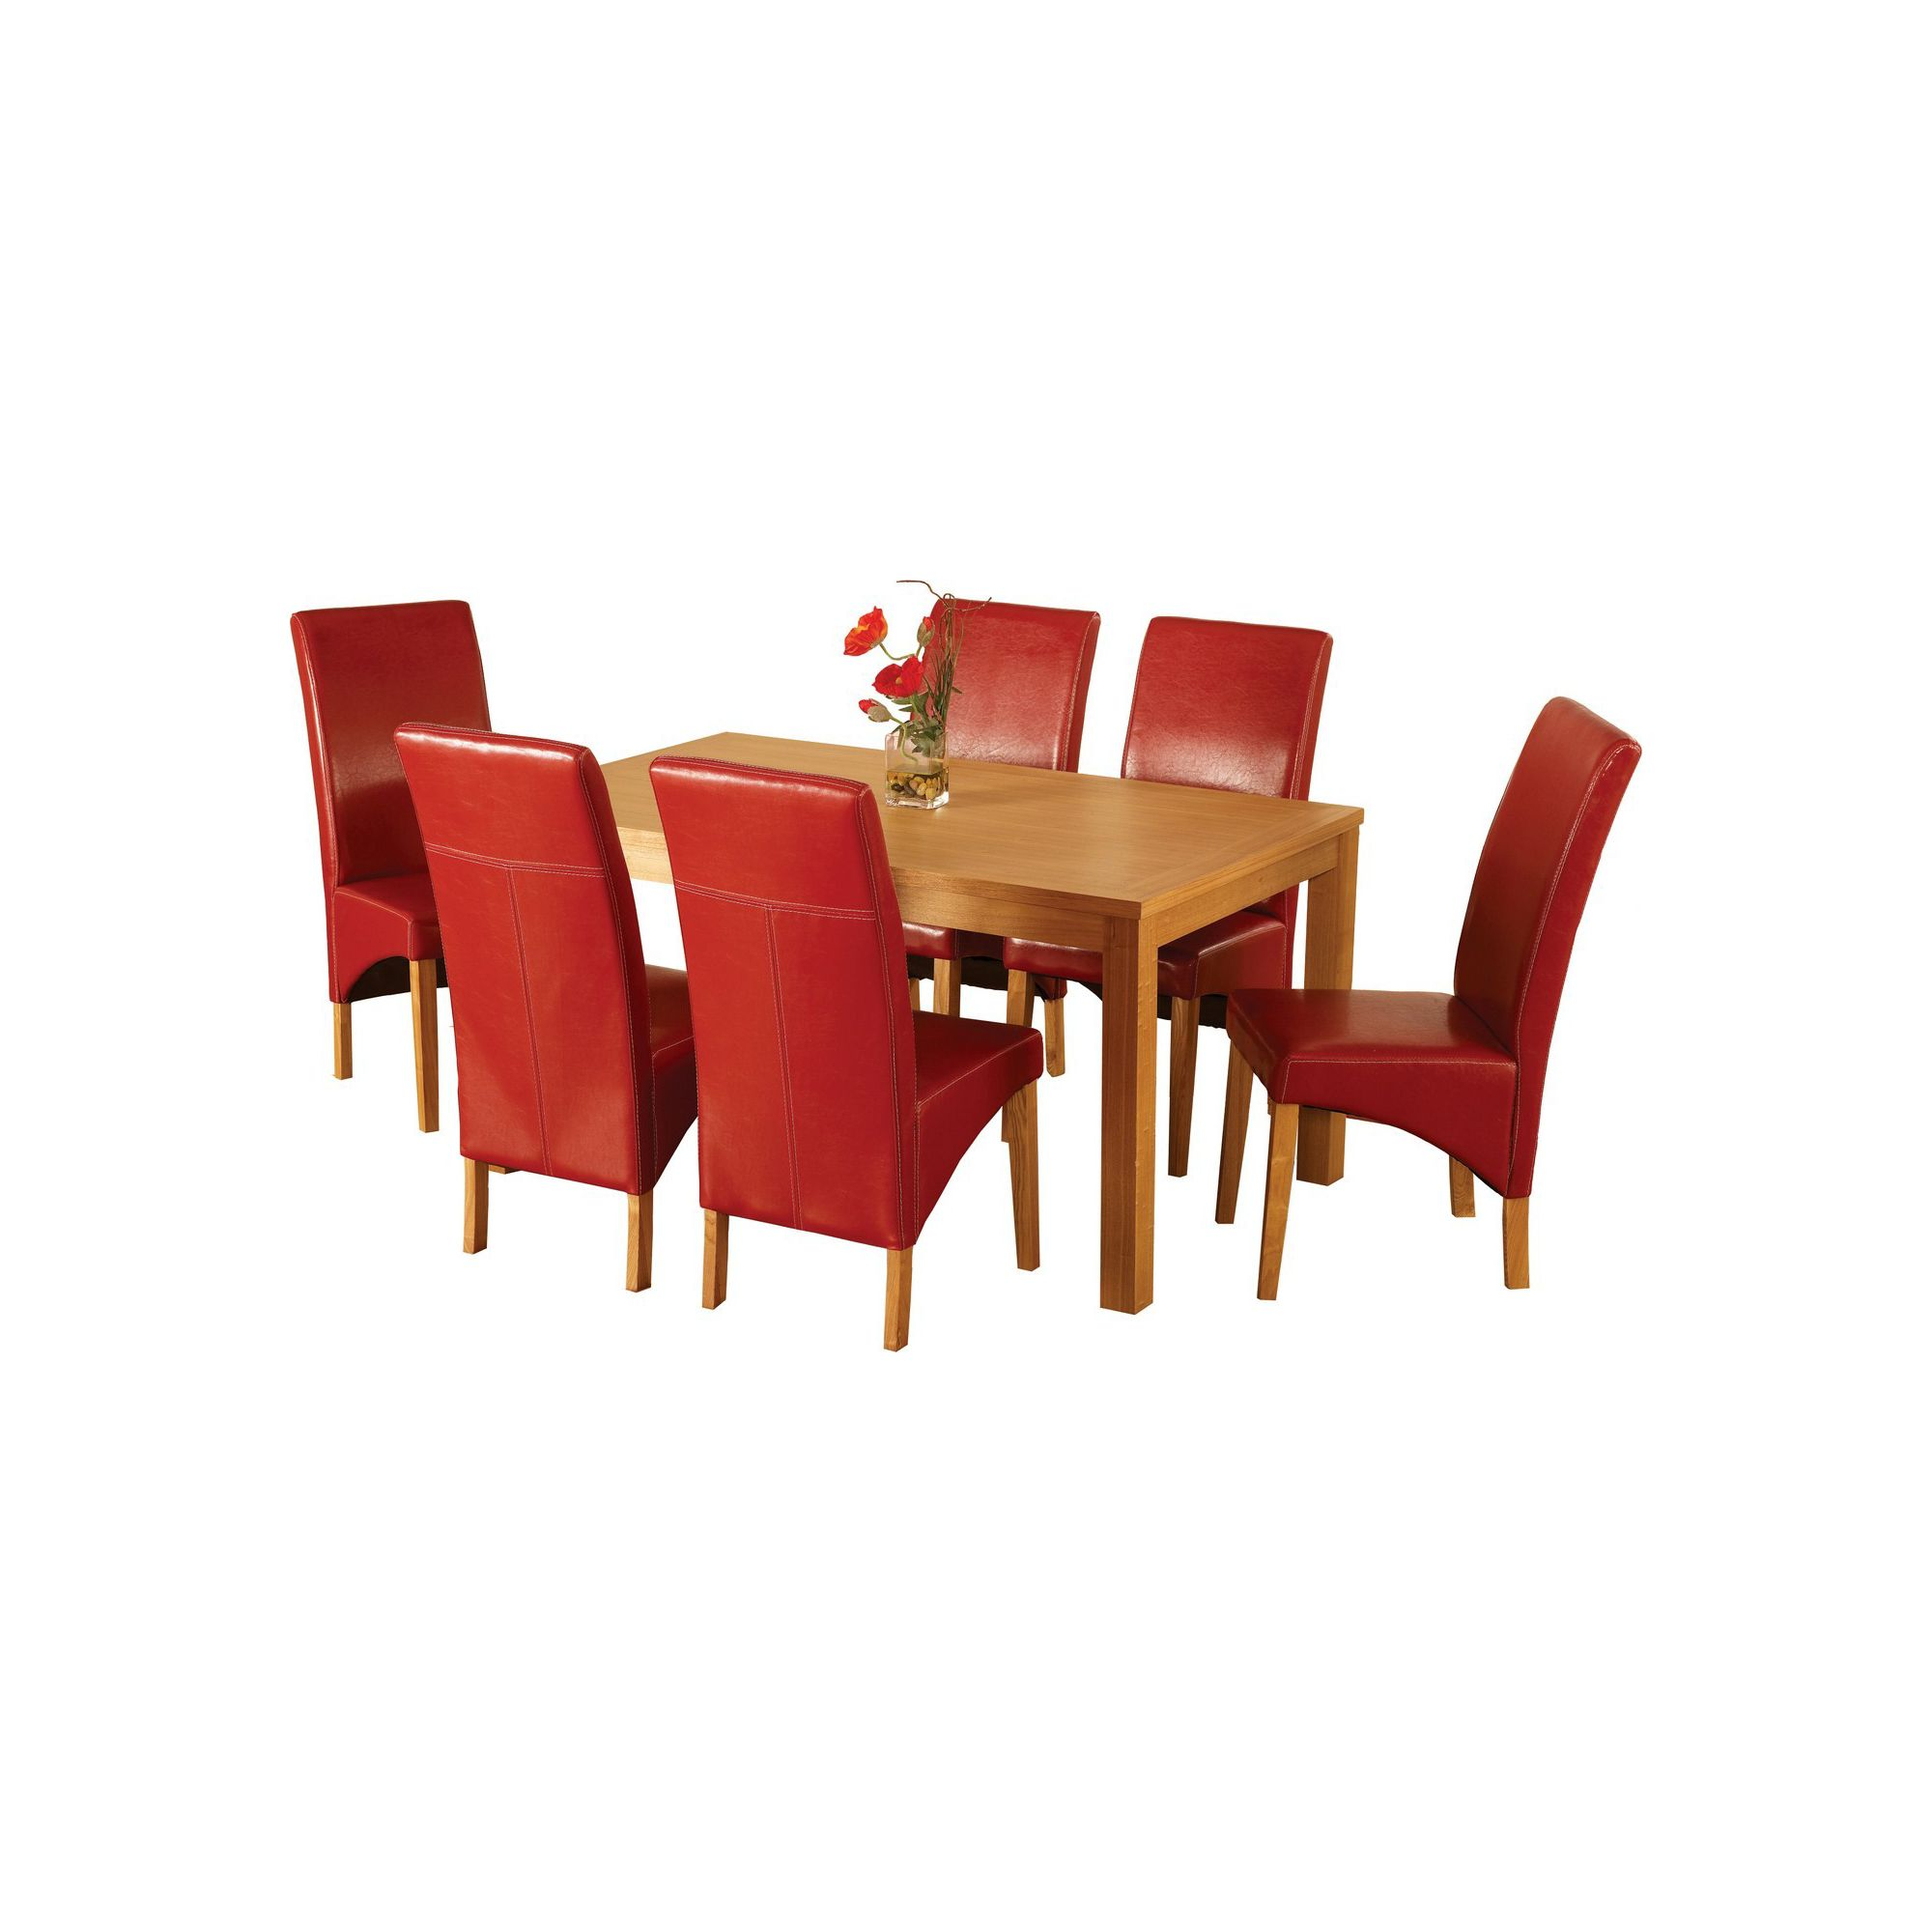 Home Essence Lawrence 7 Piece Dining Set with Red Chairs at Tesco Direct